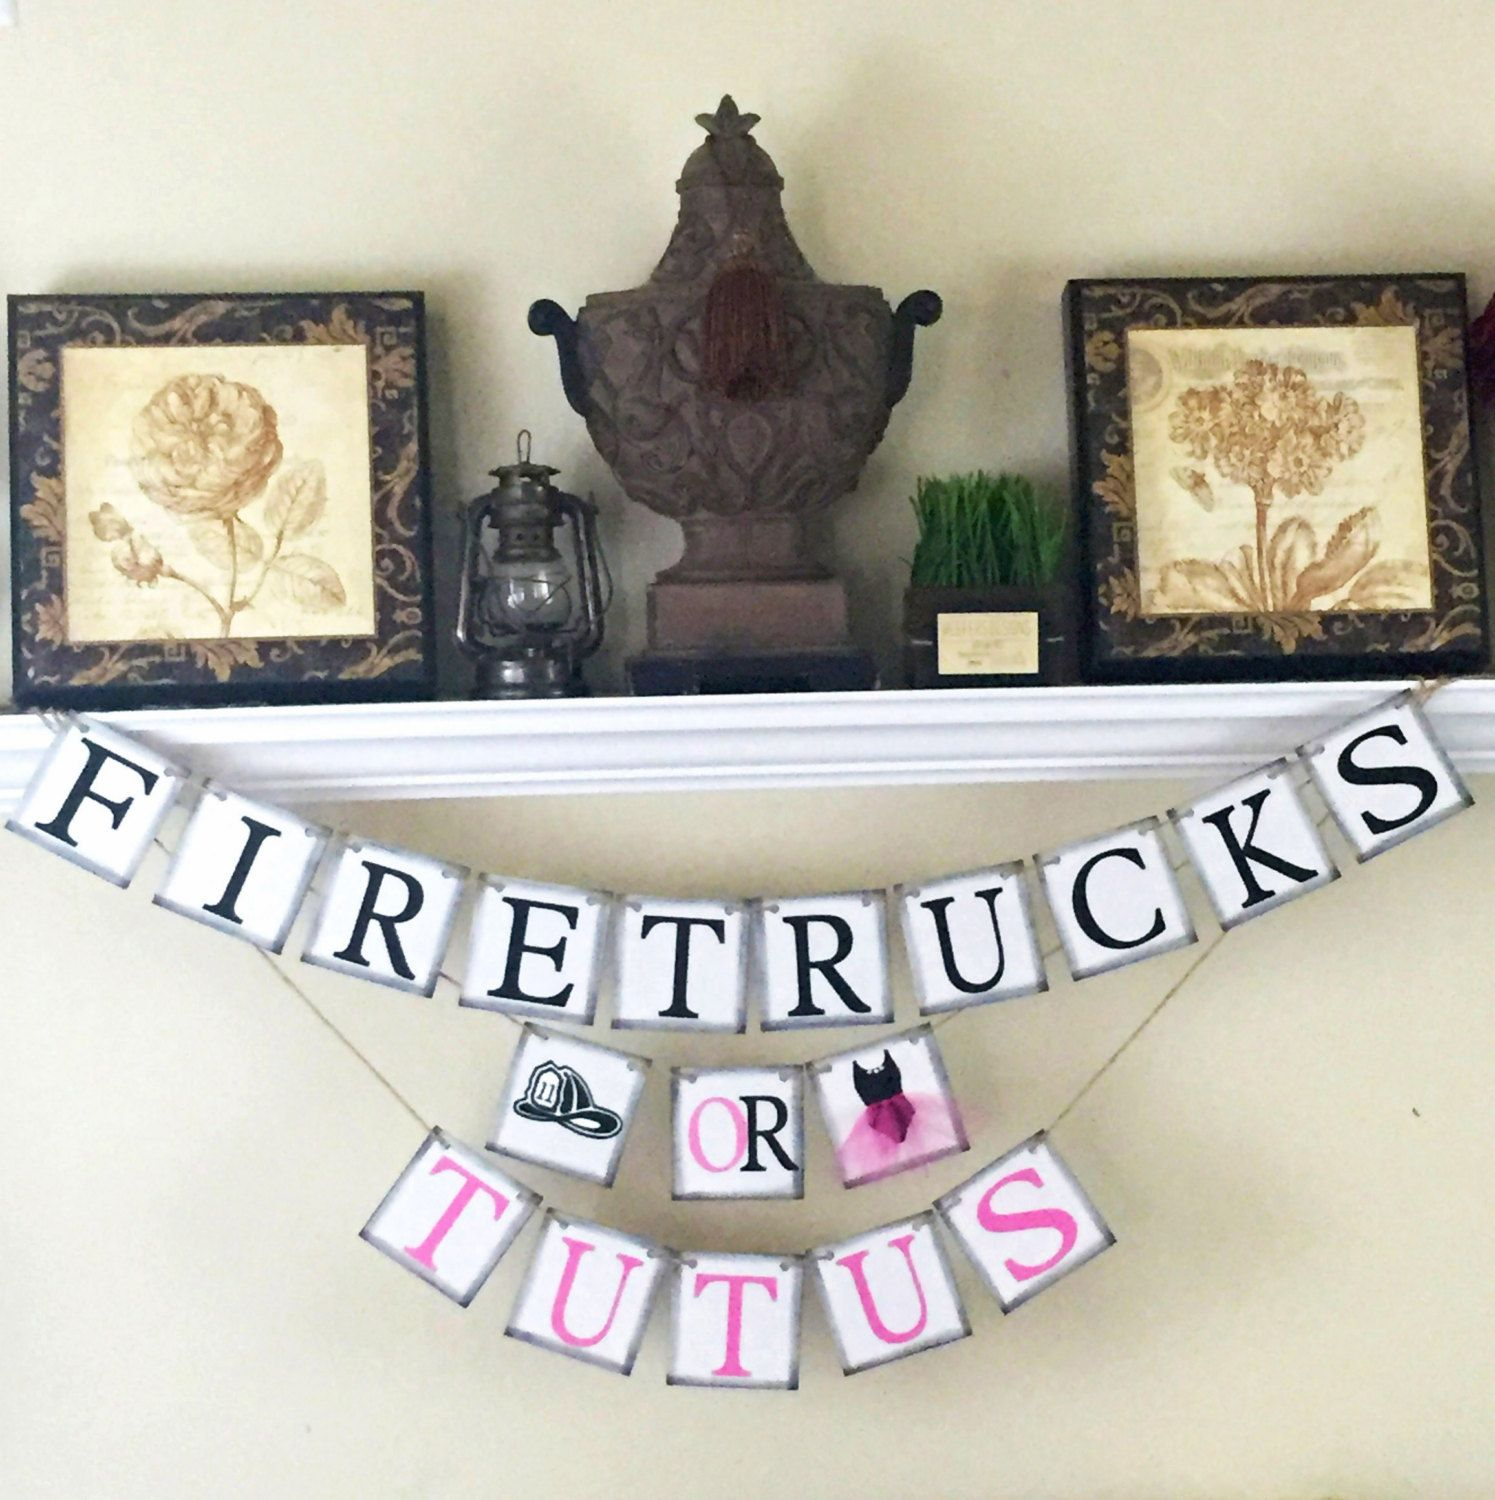 Gender Reveal Banner Firetrucks Or Tutus Baby Shower Decorations Gender Baby Reveal Party Decorations Baby Reveal Party Reveal Ideas